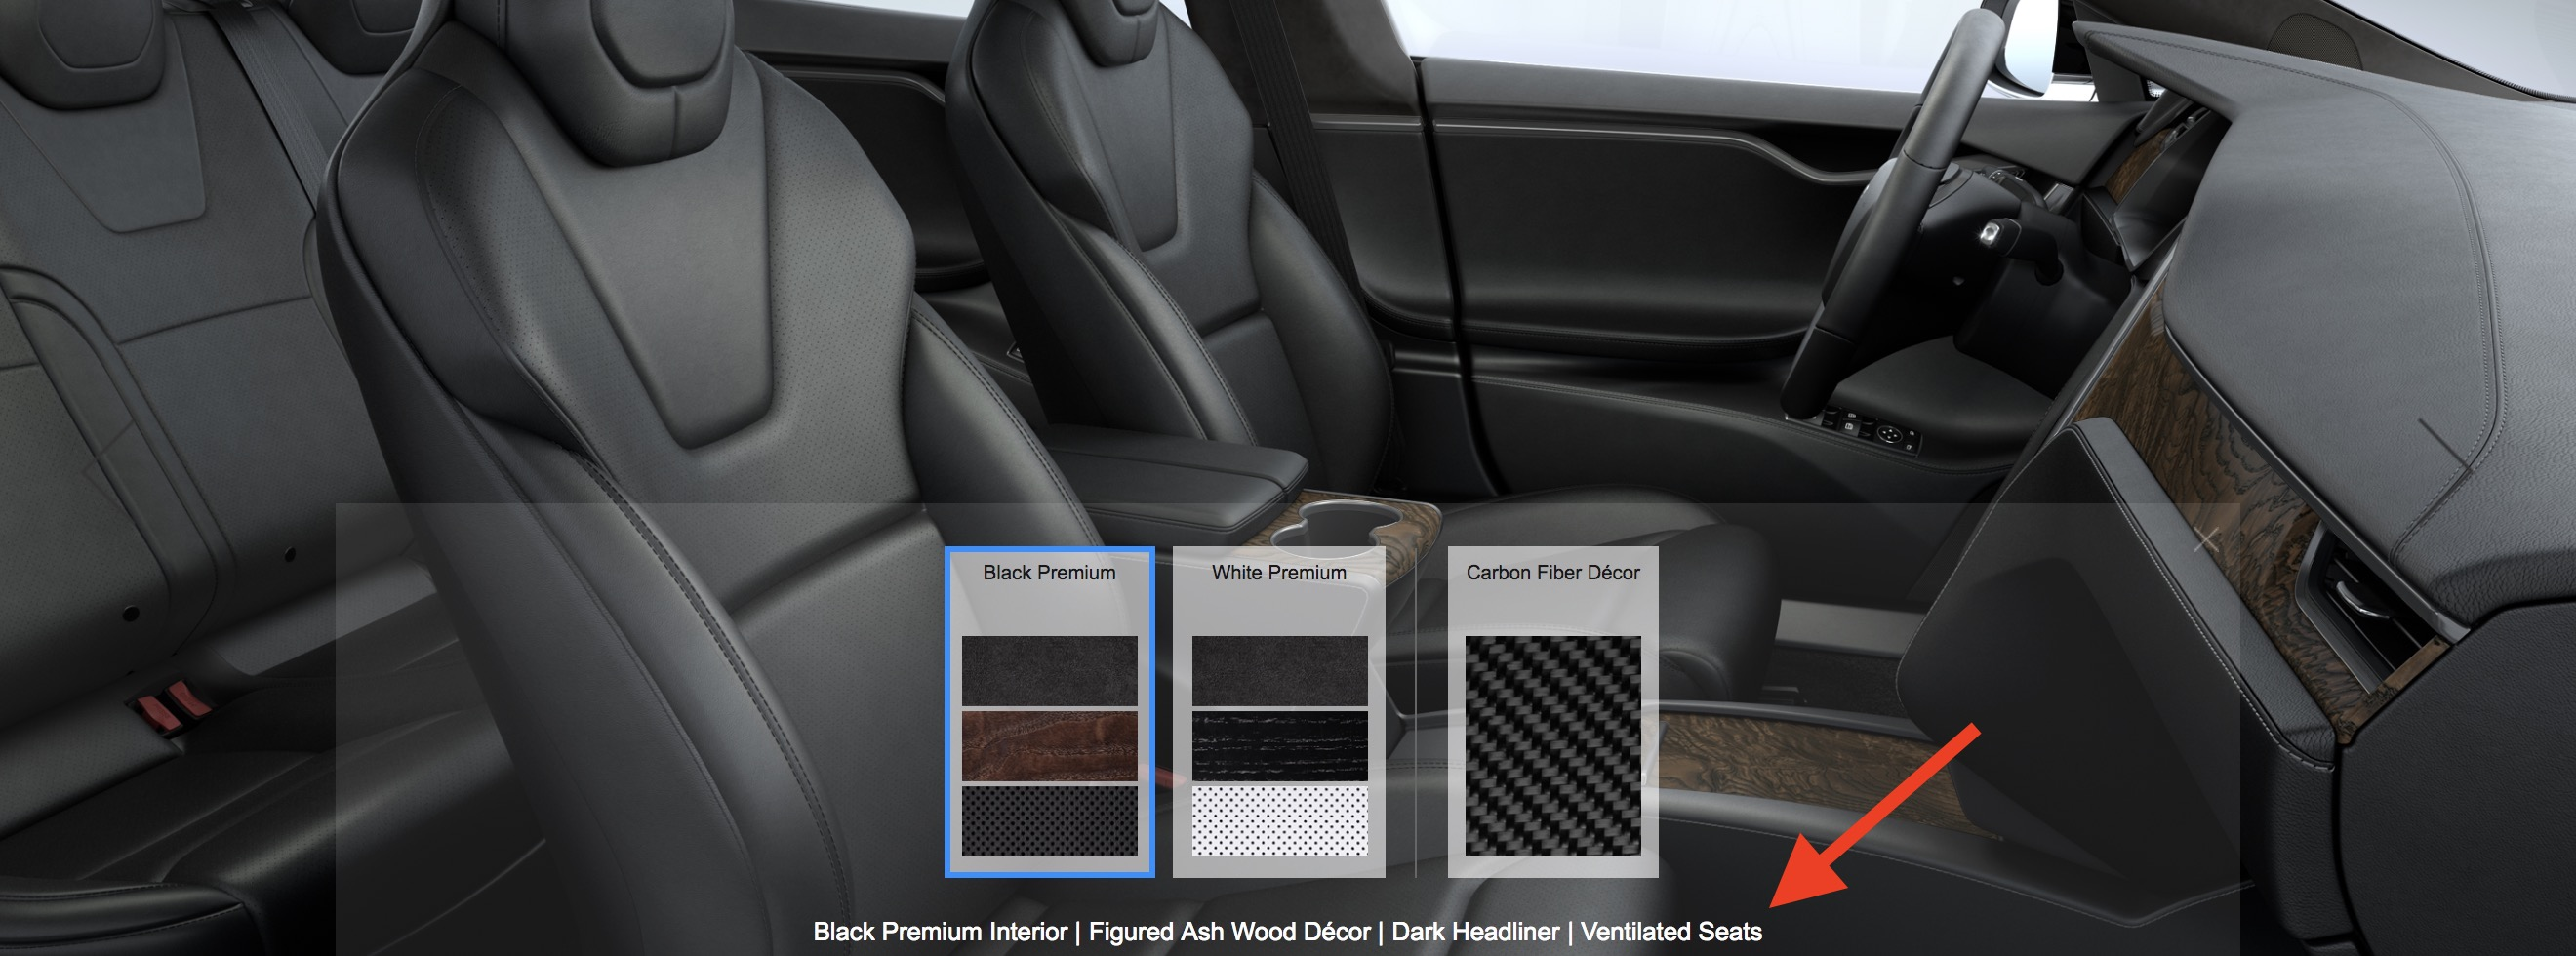 Tesla Brings Back Ventilated Seats And Makes New Black Arachnid